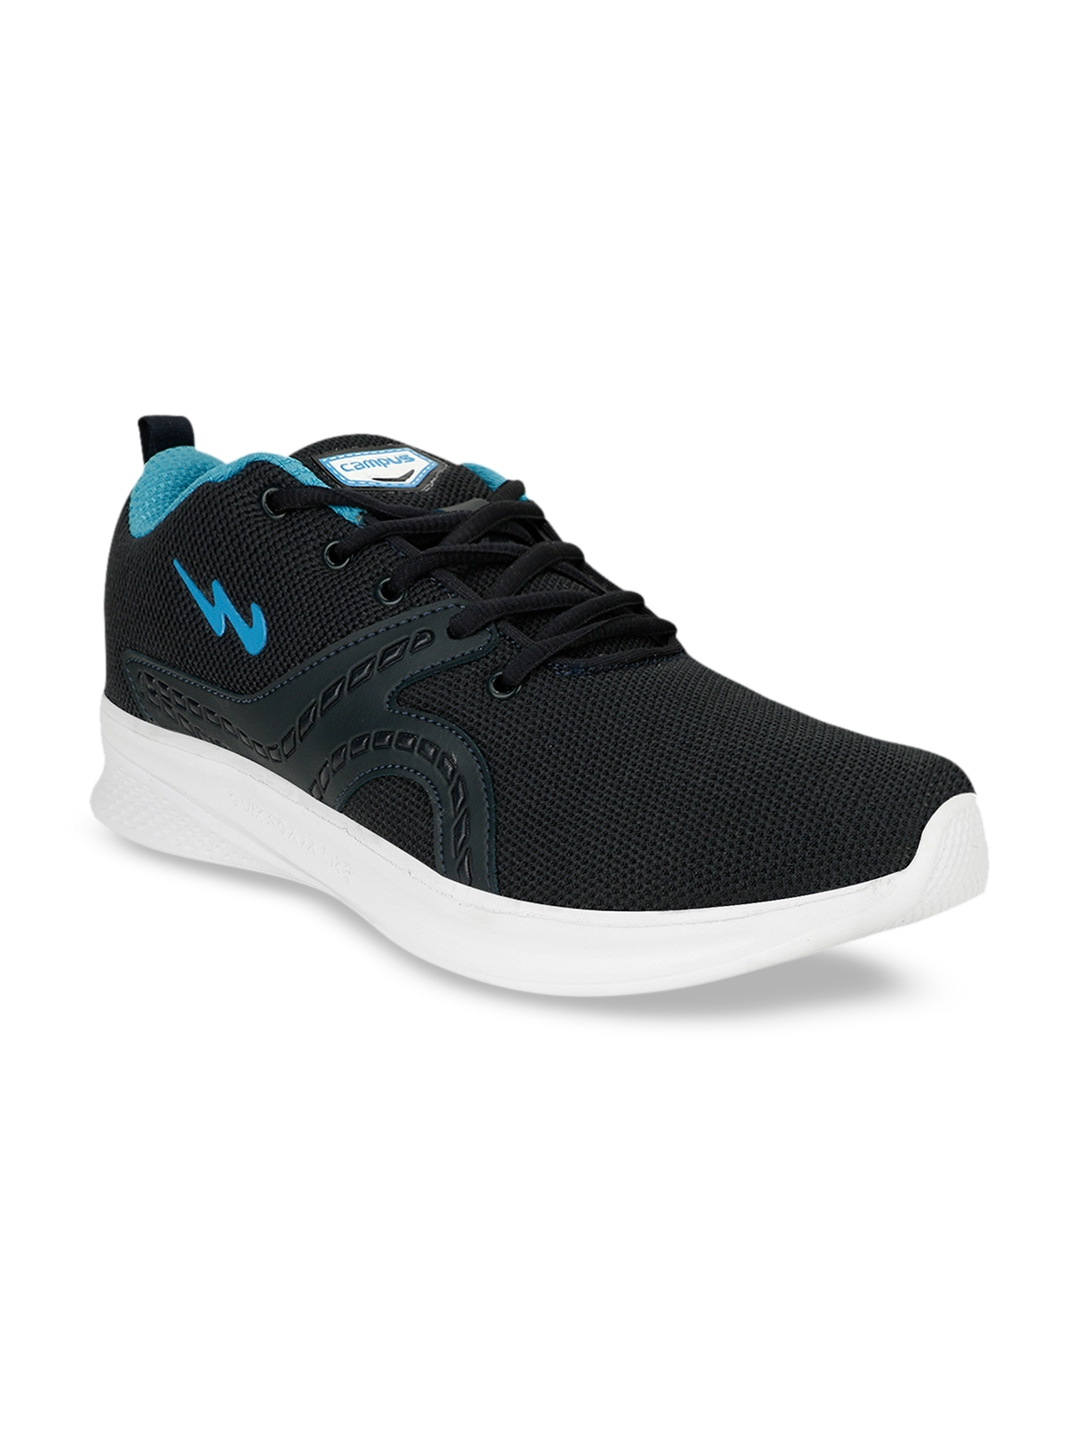 Blue Mesh LEAD Running Shoes